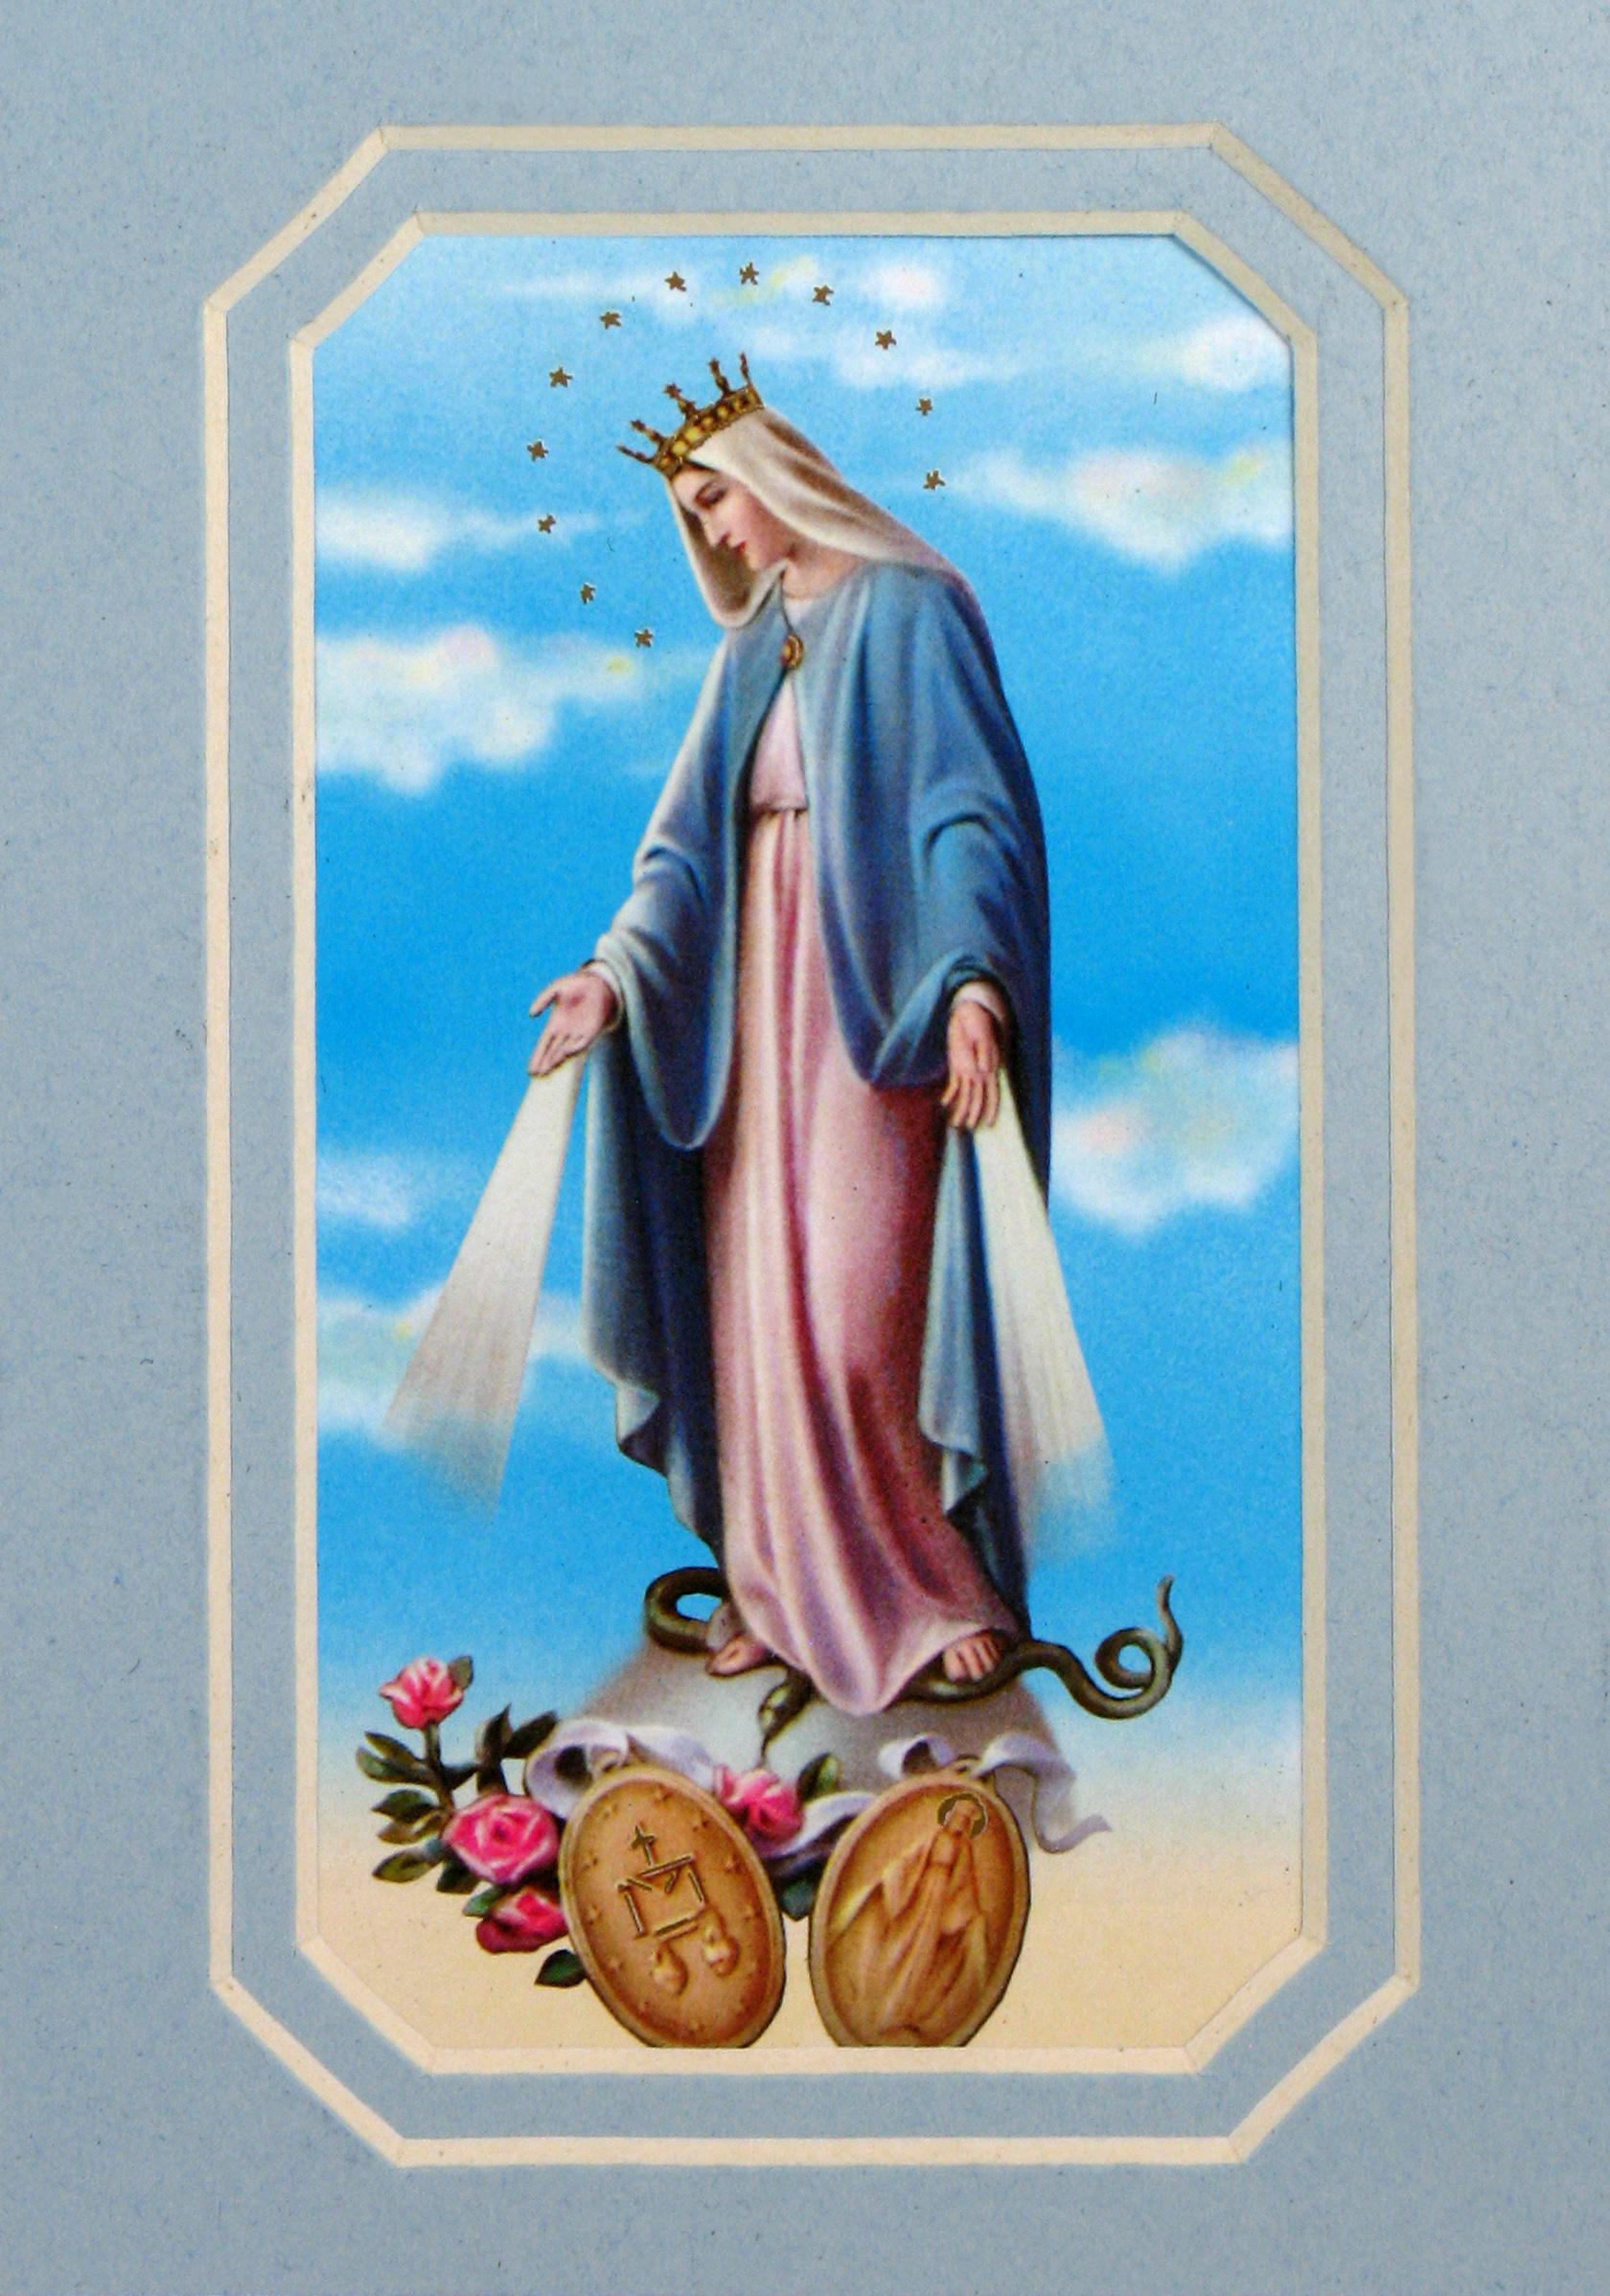 Miraculous Medal 3x5 Prayerful Mat #35MAT-MM